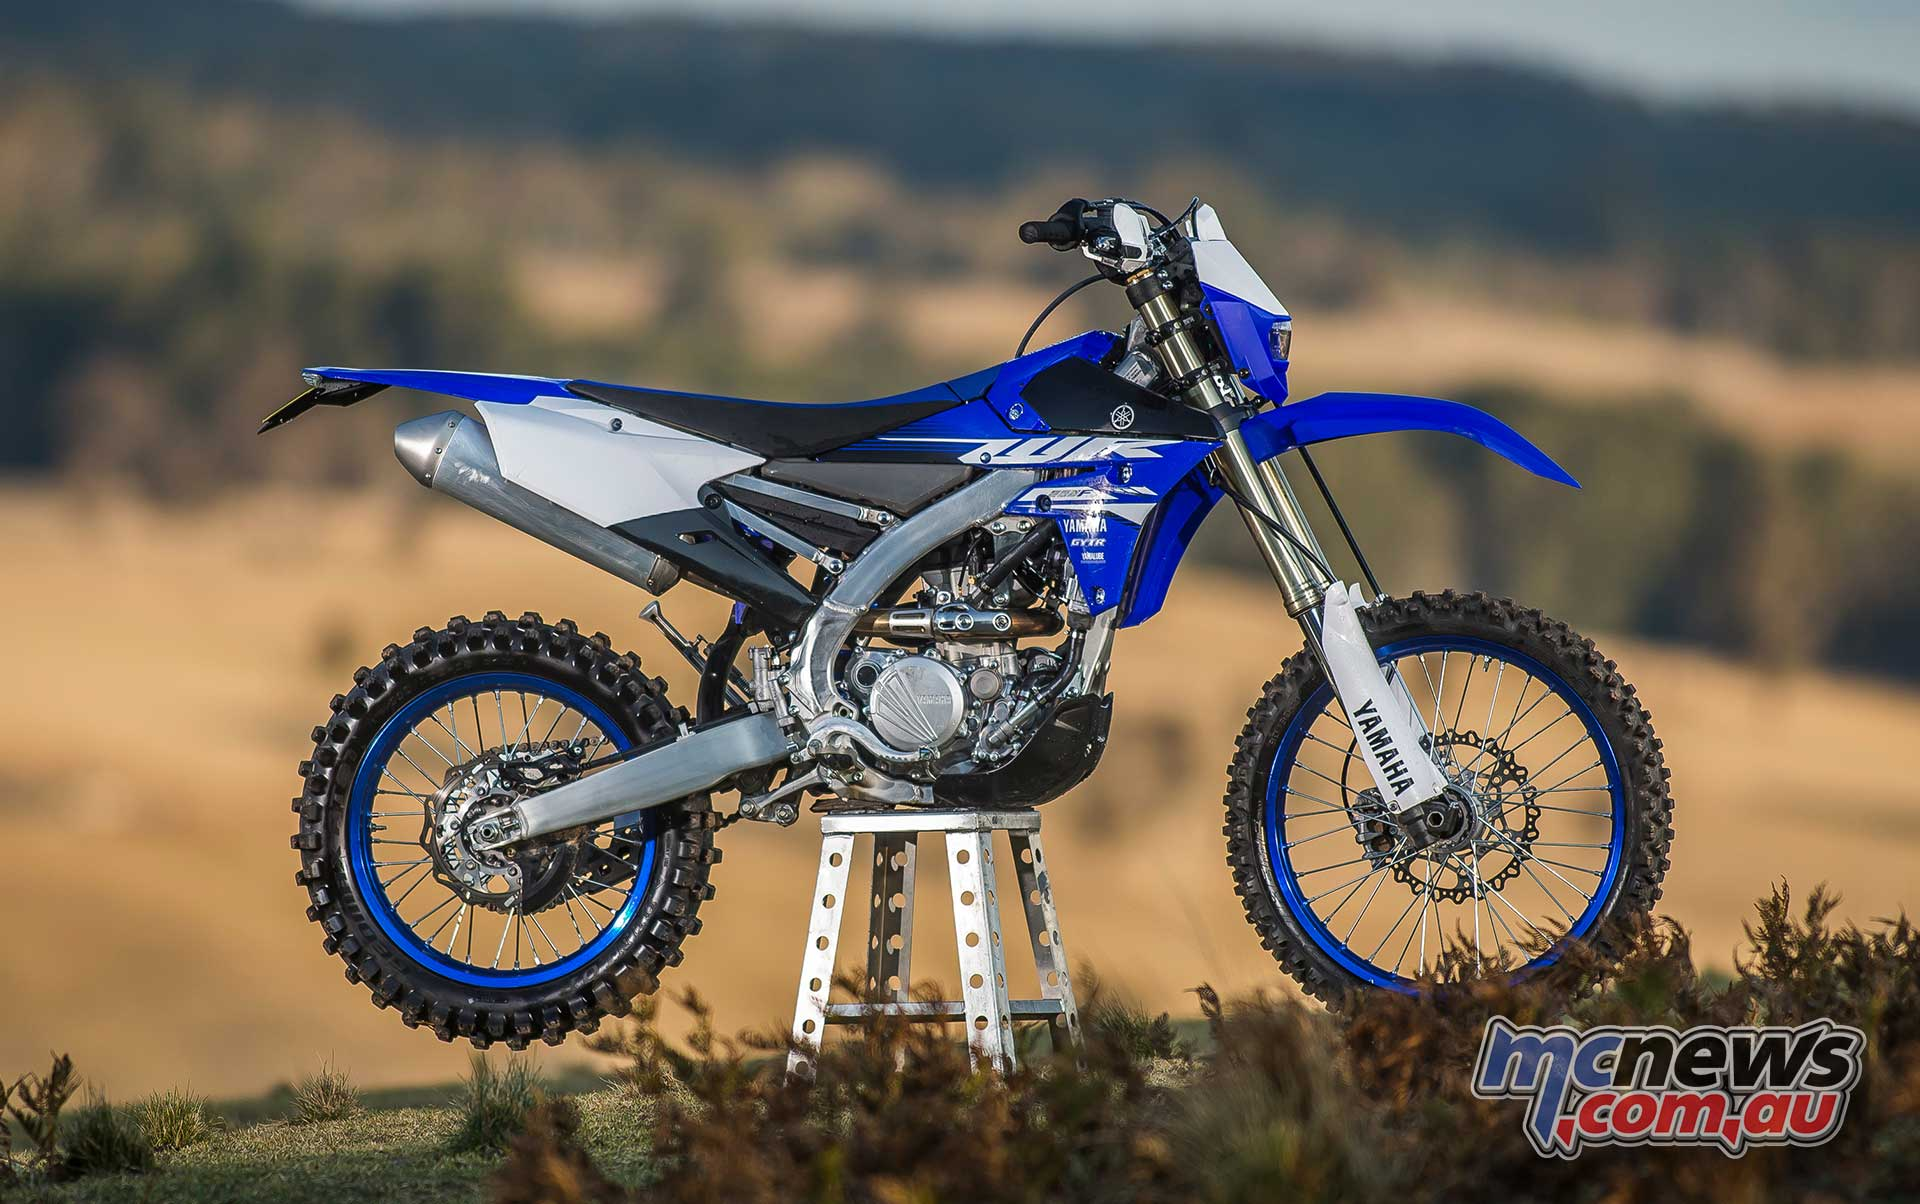 2018 Yamaha WR250F Review Motorcycle Test MCNewscomau 1920x1204